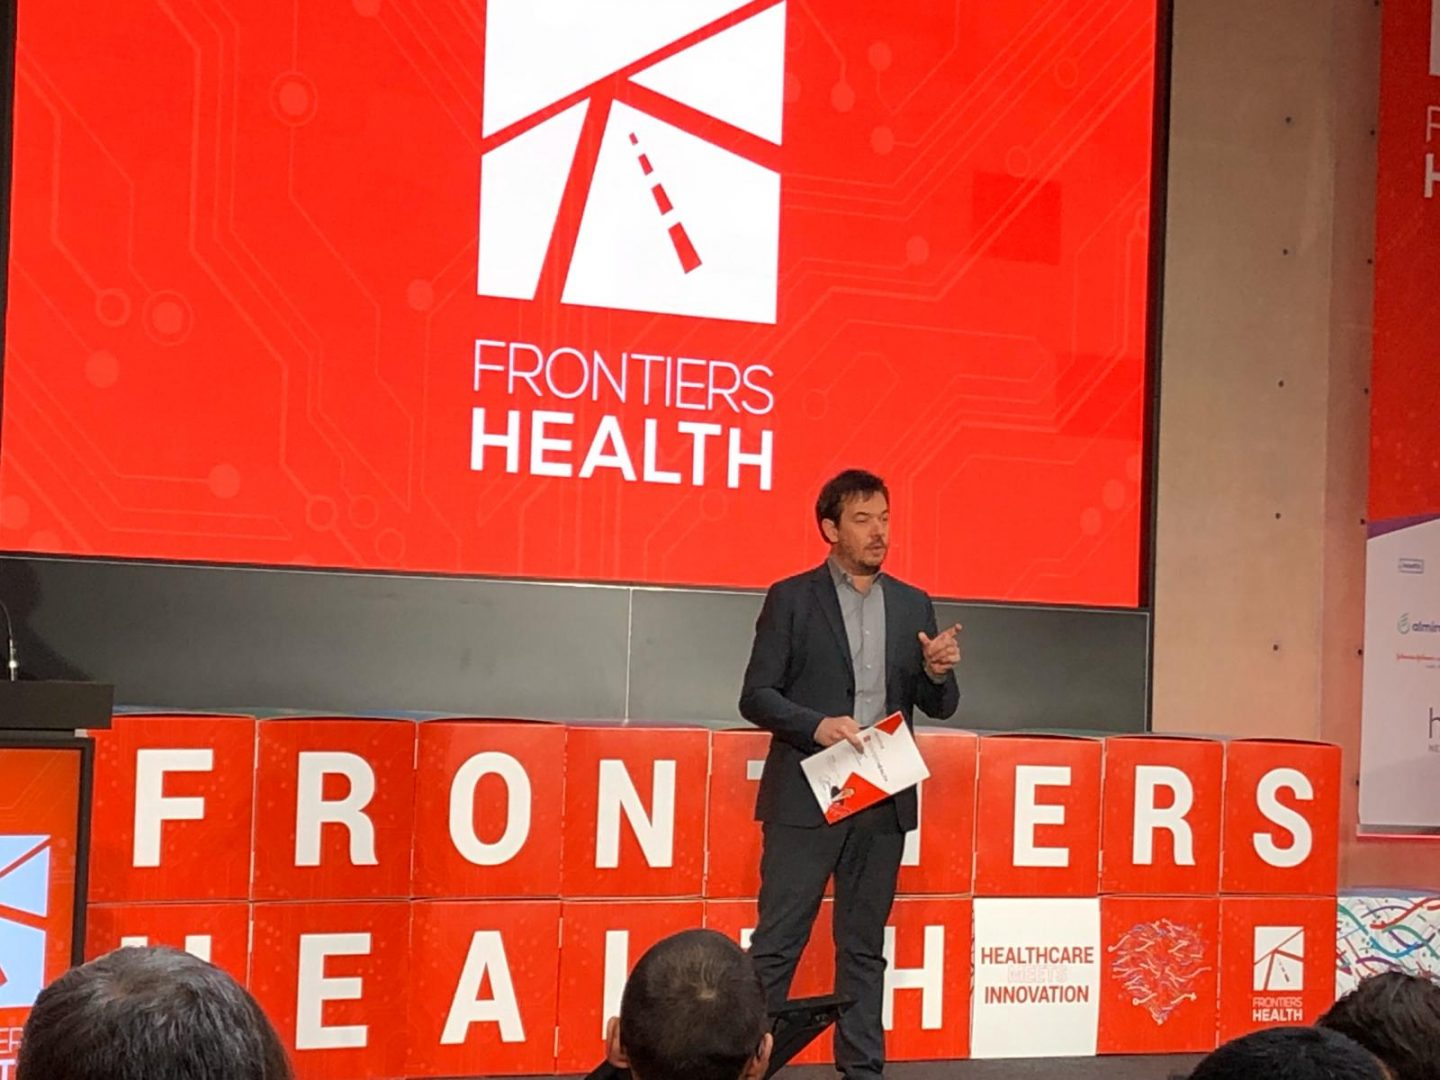 Frontiers Health - the leading international conference dedicated to digital health - kicks off today in Berlin